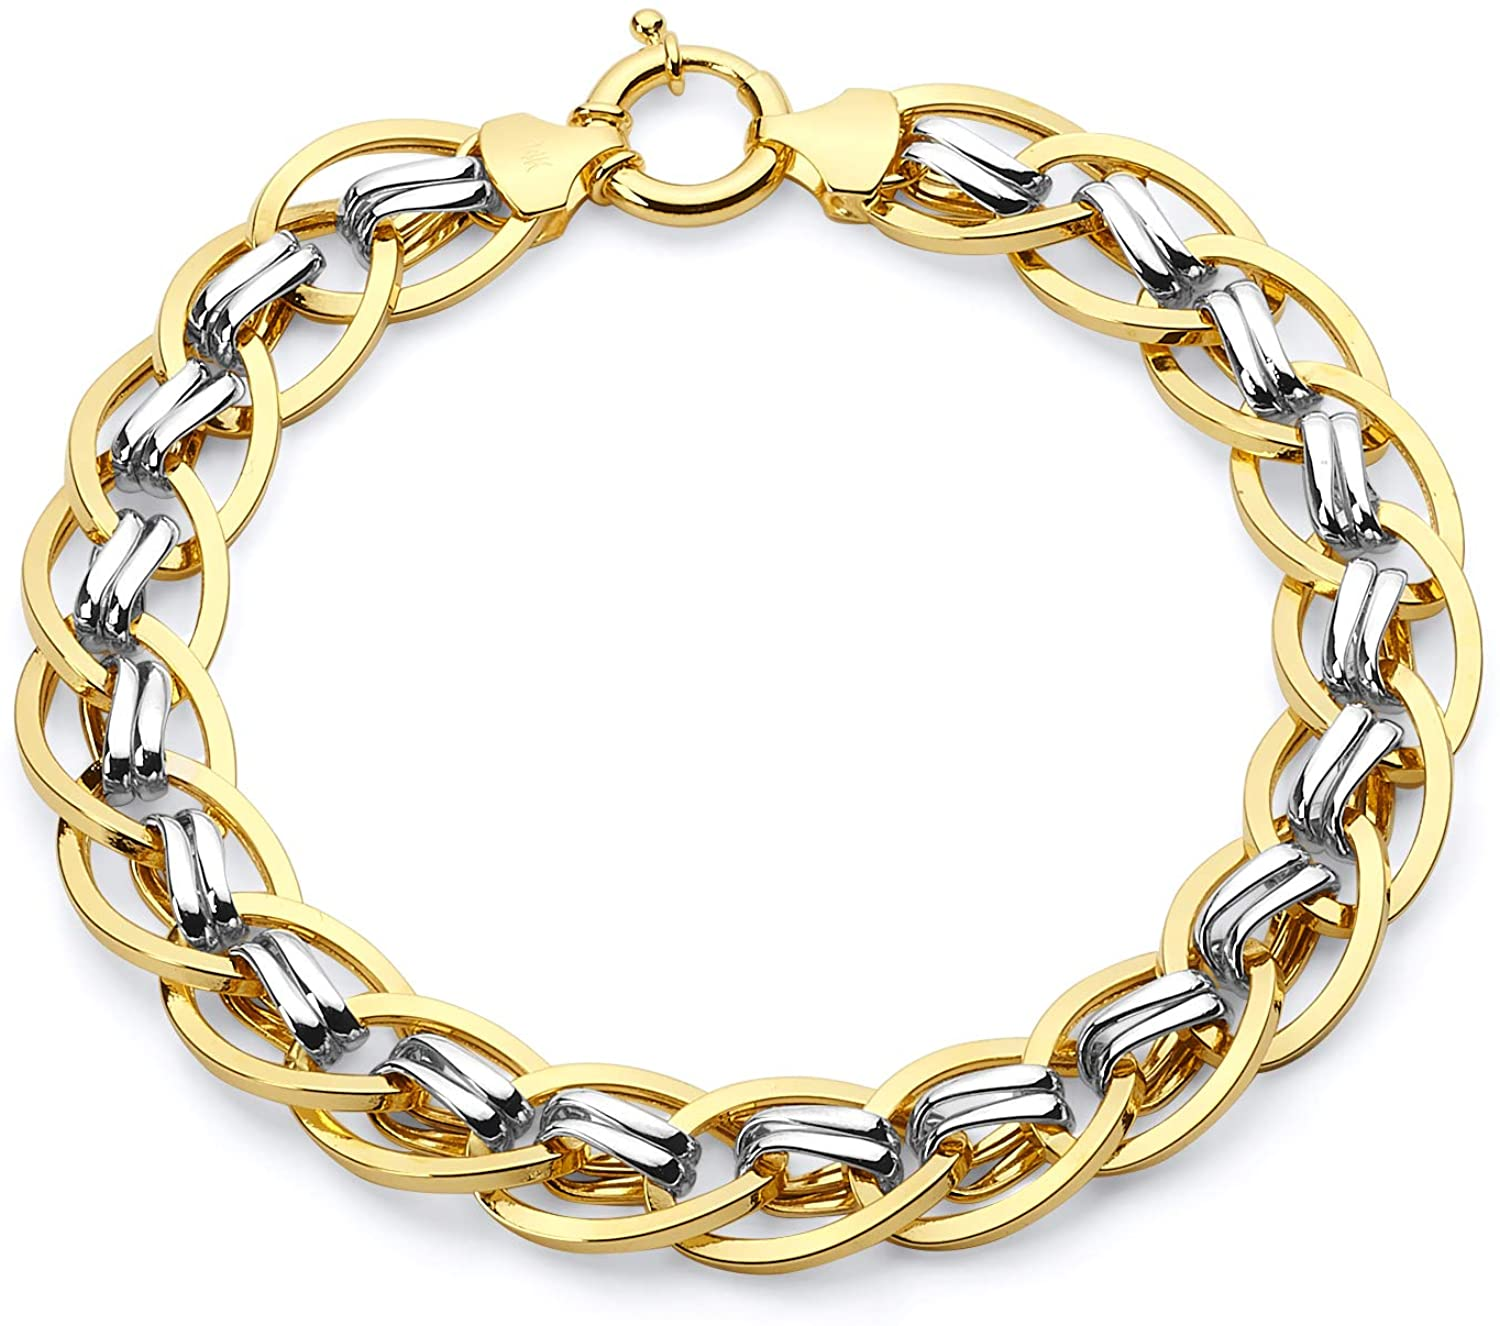 Wellingsale 14k Two 2 Tone White and Yellow Gold Chain Link Bracelet with Spring Ring Clasp - 7.5